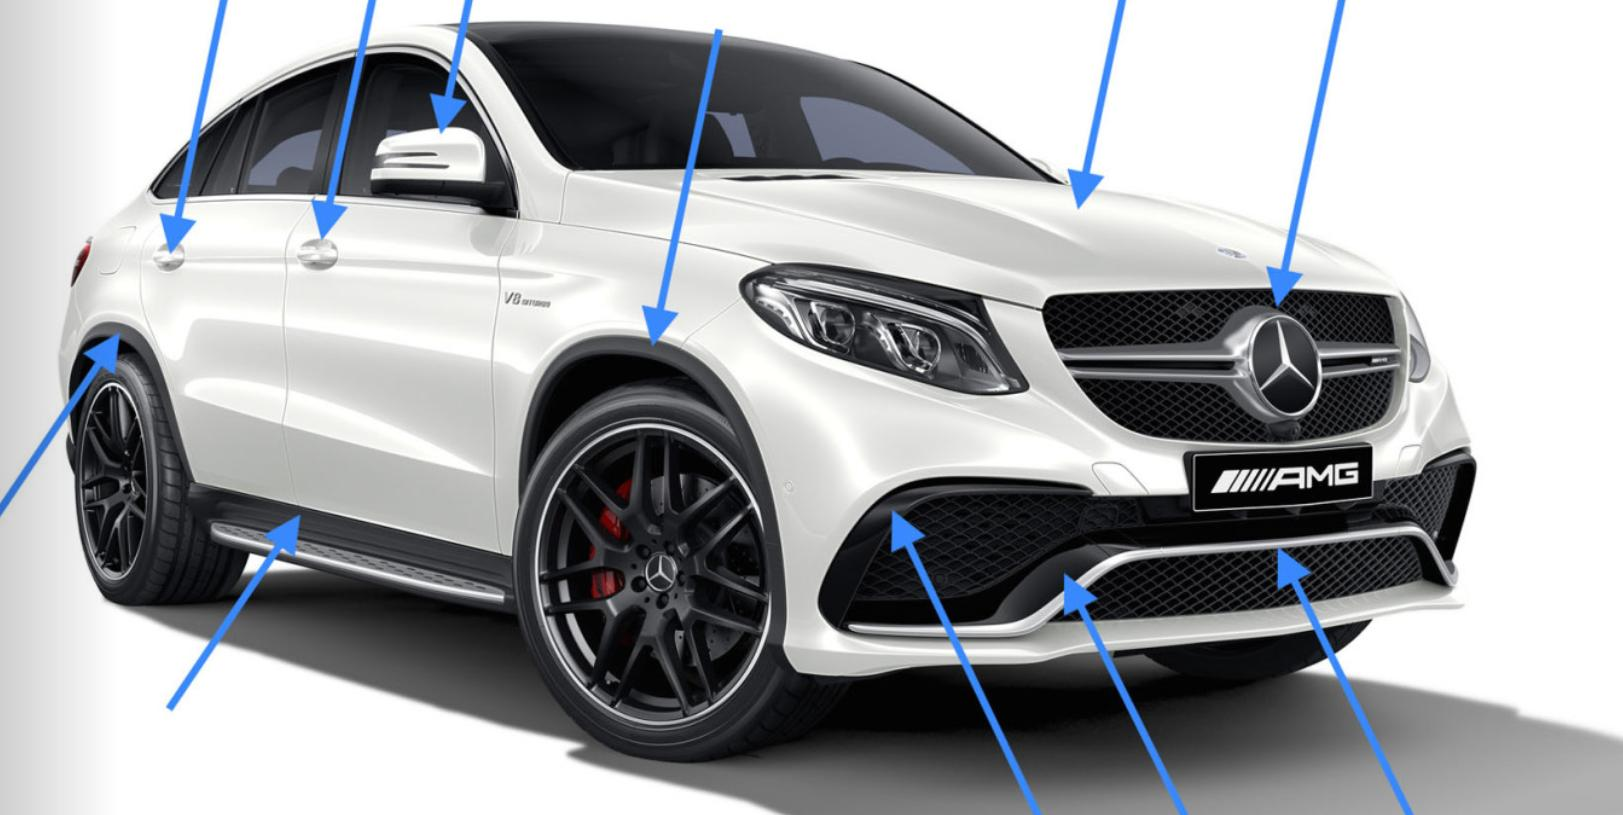 New Carbon Parts For Mercedes Benz Gle Coupe Tuning Empire